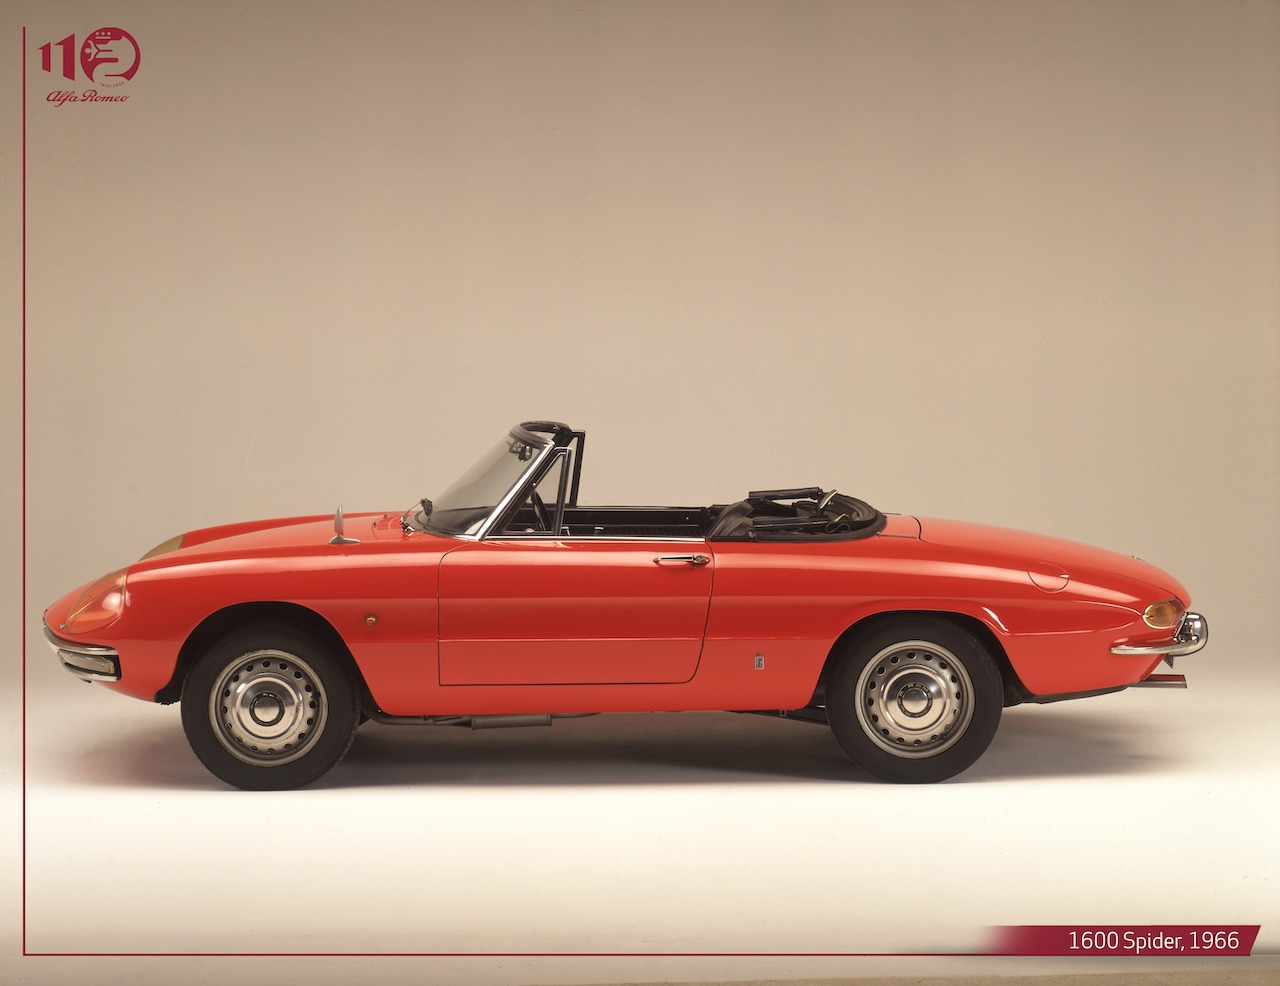 The Alfa Romeo Duetto Spider that conquered Hollywood